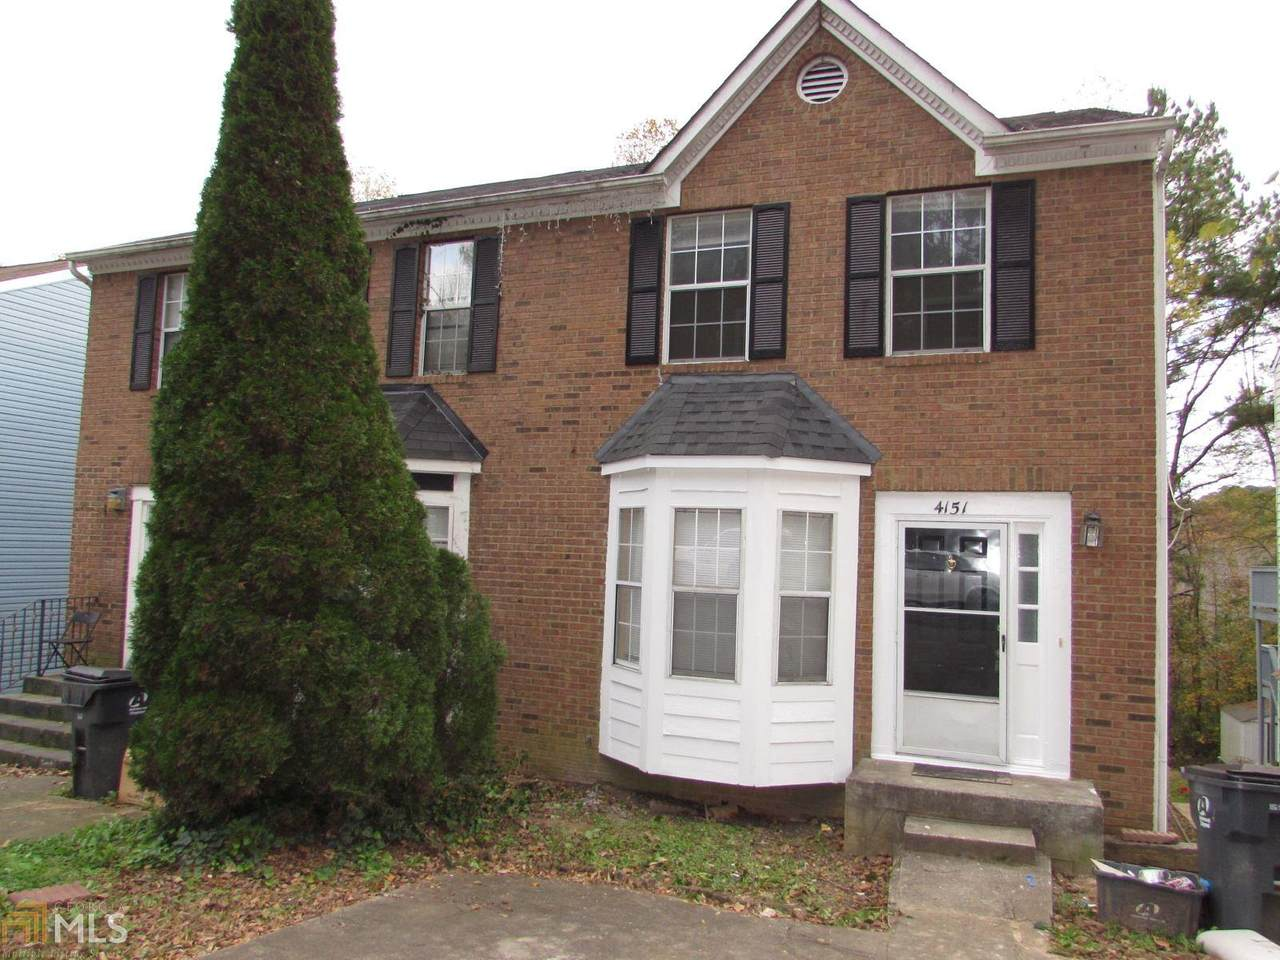 4151 Buckley Woods Dr - Photo 1